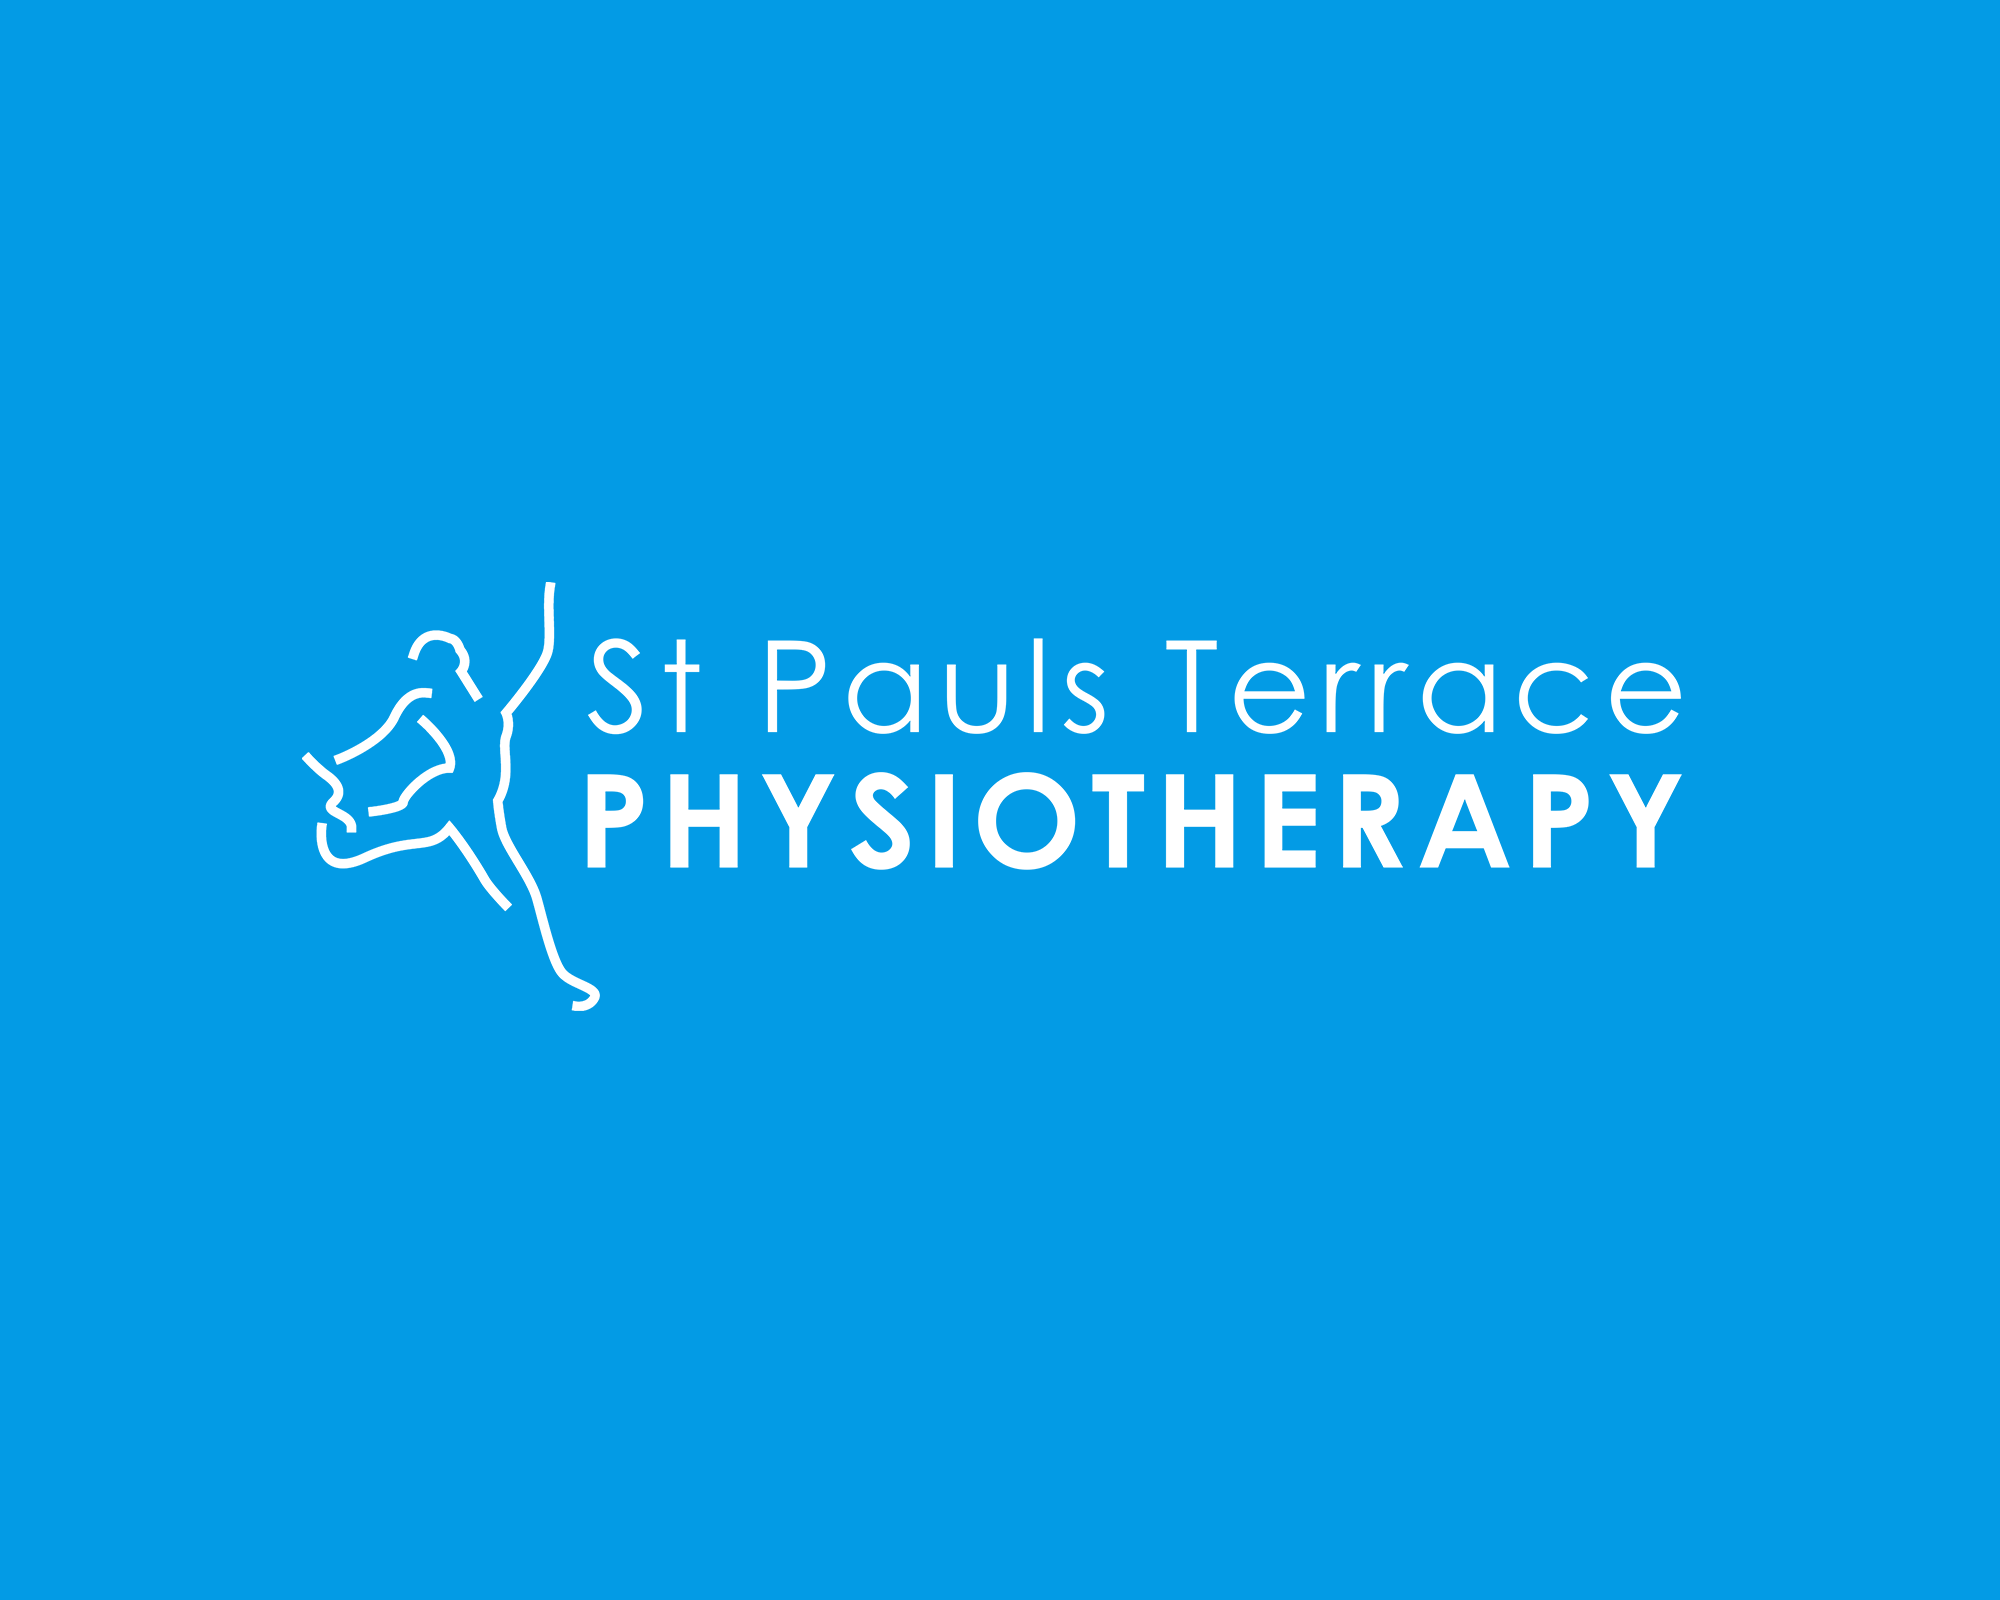 st pauls terrace physiotherapy Logo